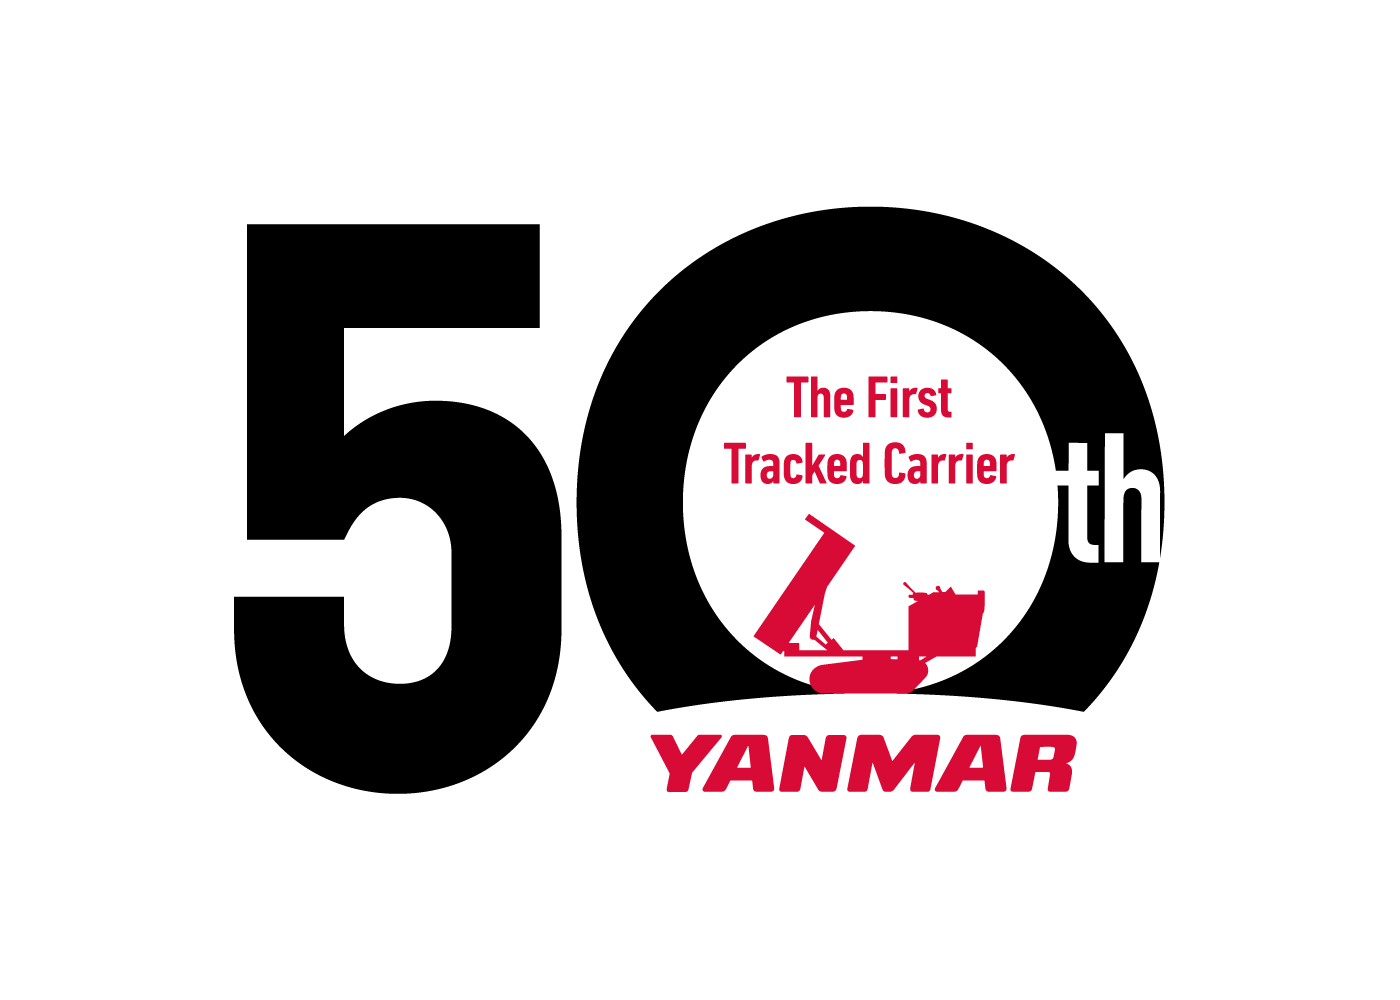 Yanmar celebrates 50th anniversary of tracked carrier